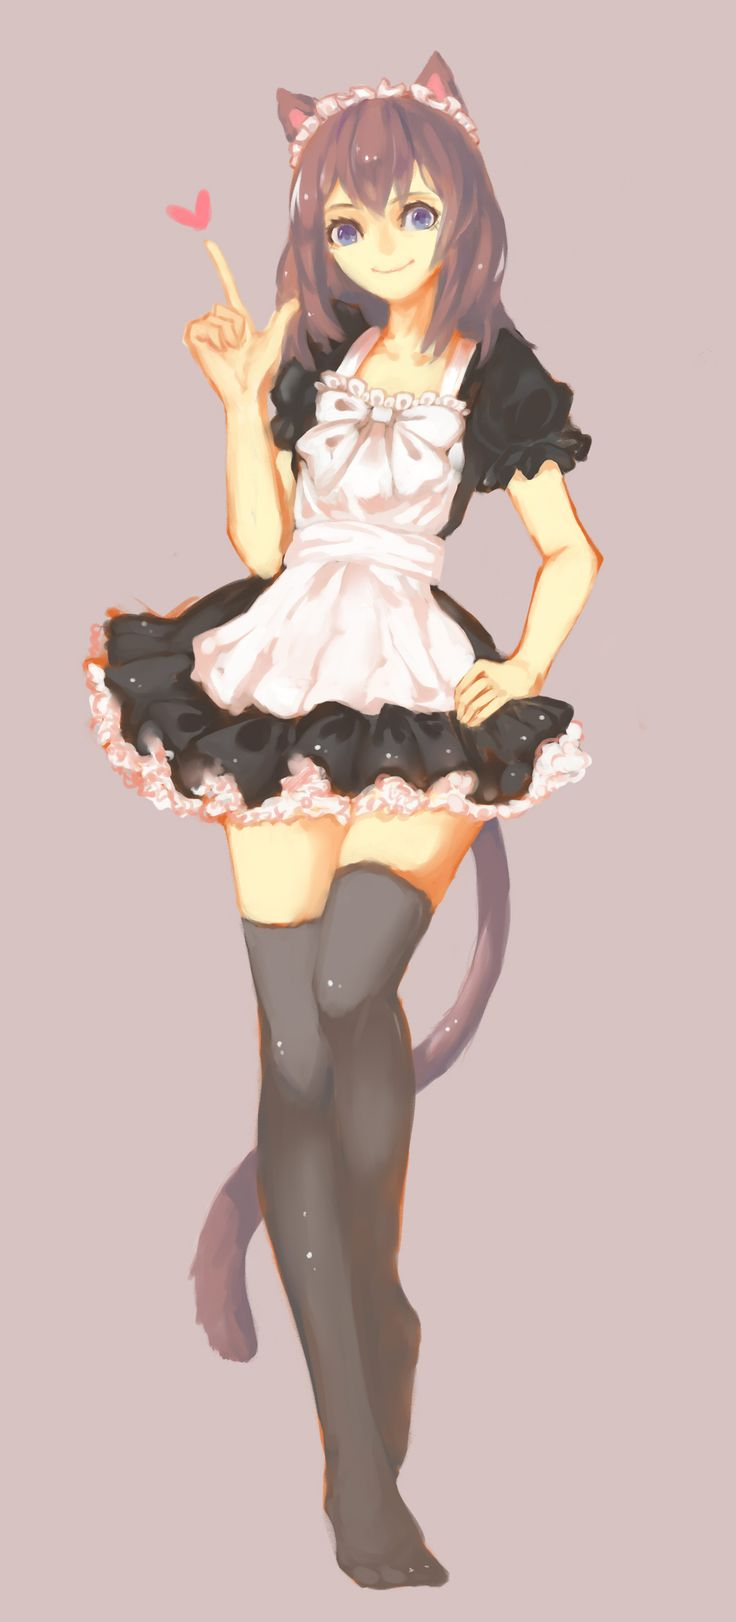 52 Best Images About Neko On Pinterest Catgirl Cats And